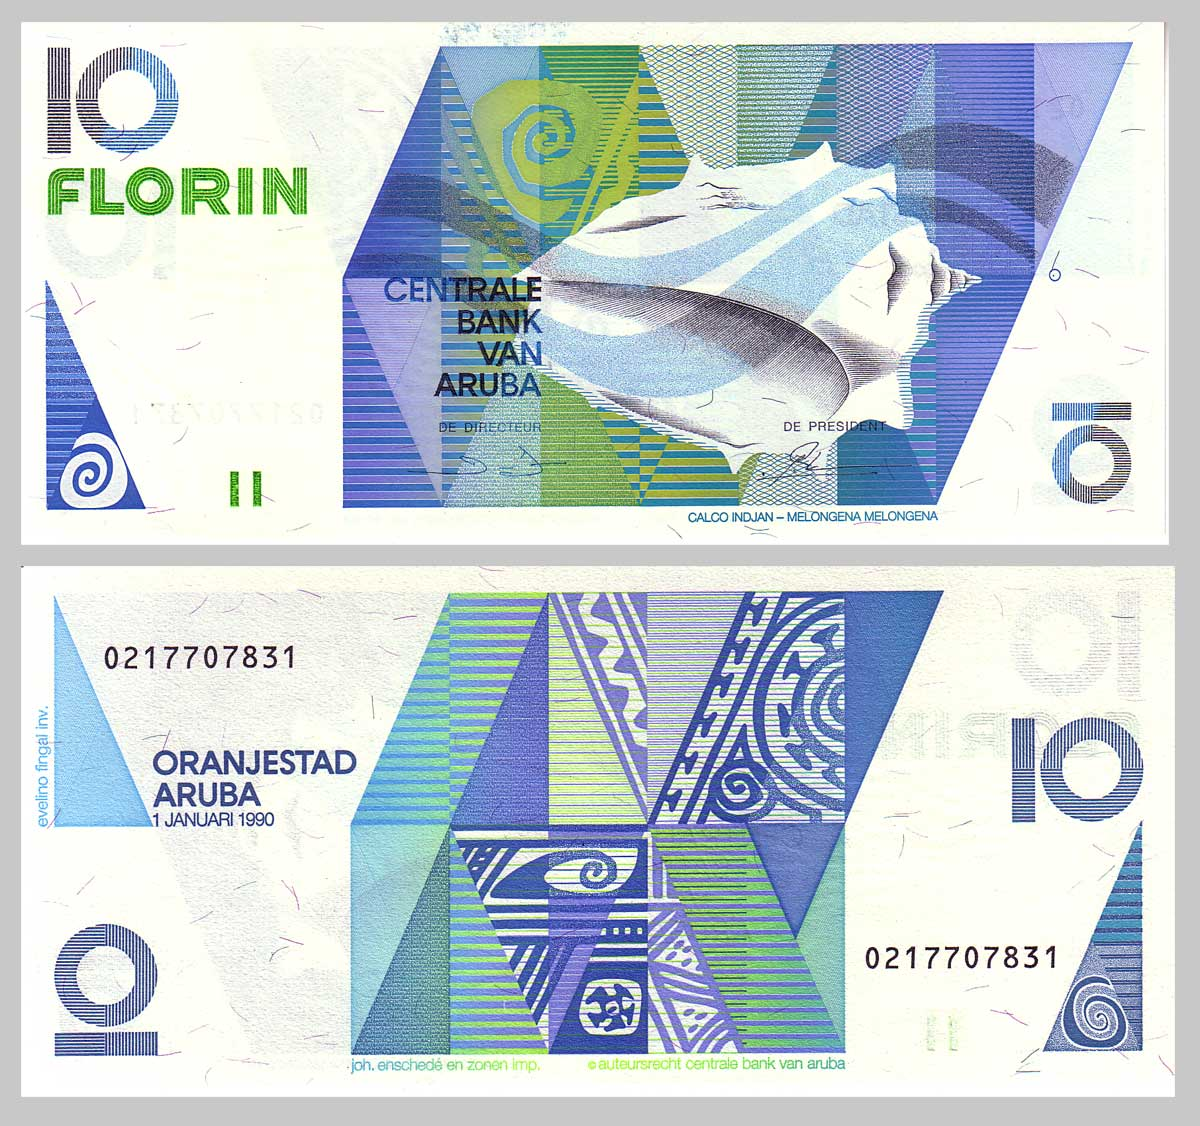 Pick 7 Centrale Bank Van Aruba 10 Florin Note 1990 Issue 01 January Obverse West Indian Crown Conch Melongena At Center Right